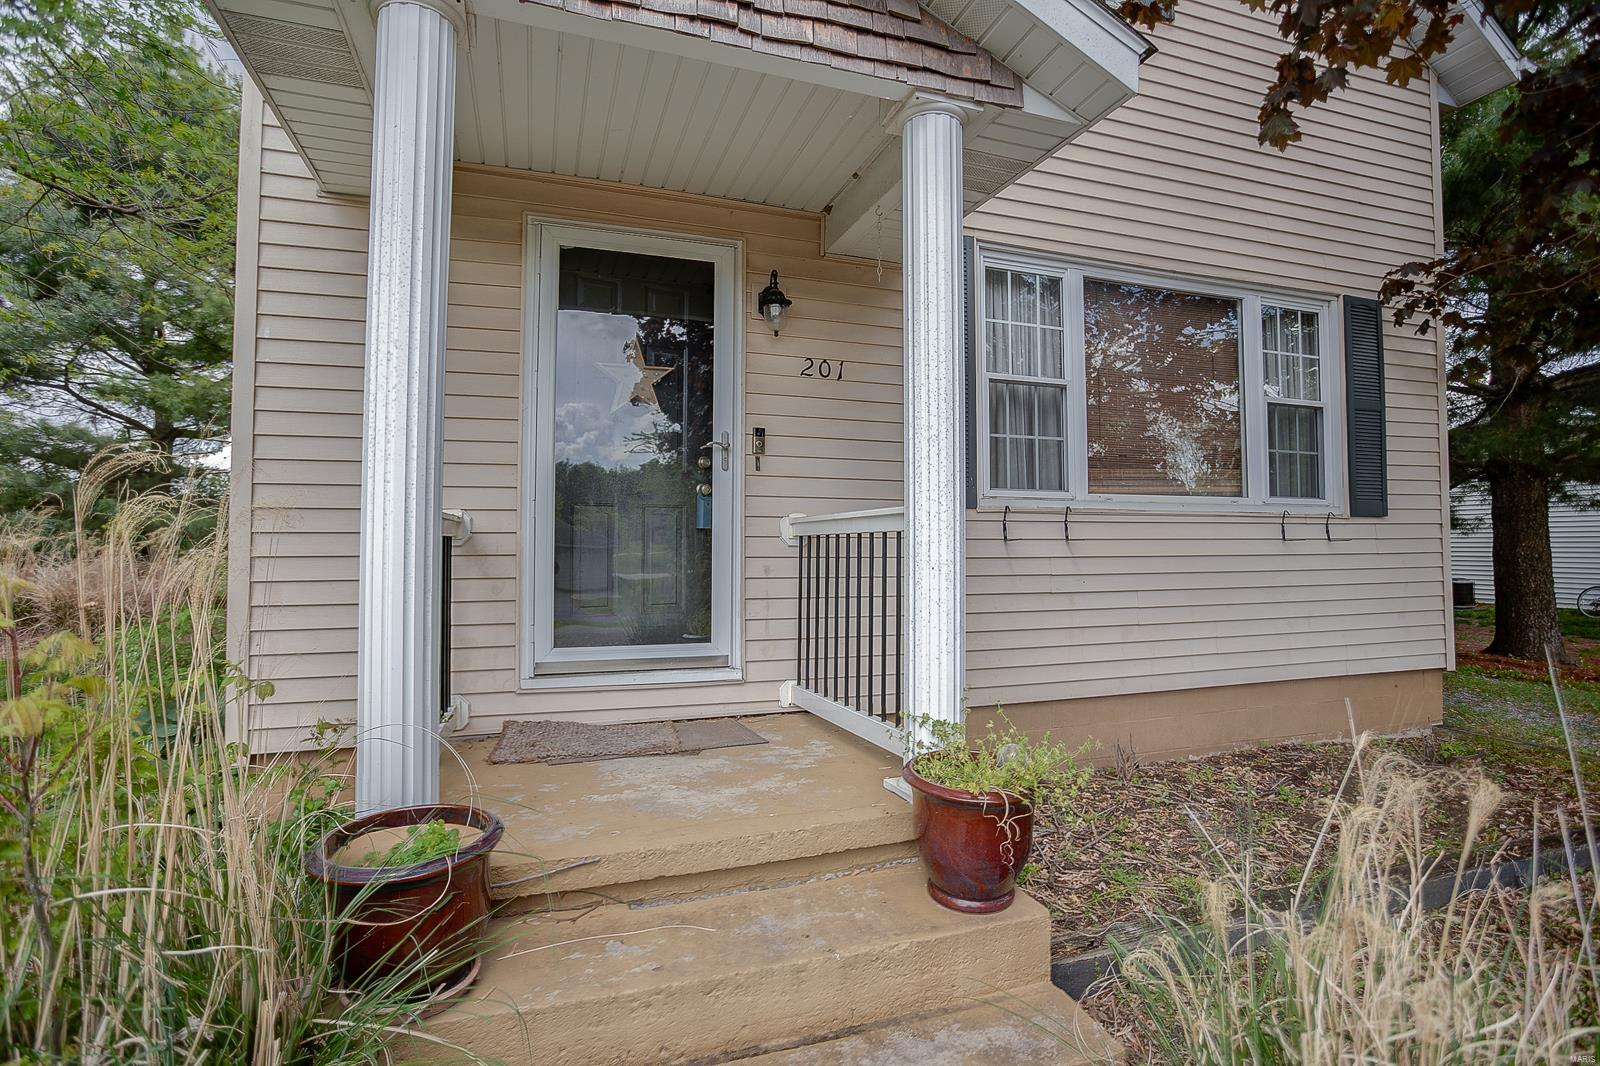 201 W North st Property Photo - Alhambra, IL real estate listing